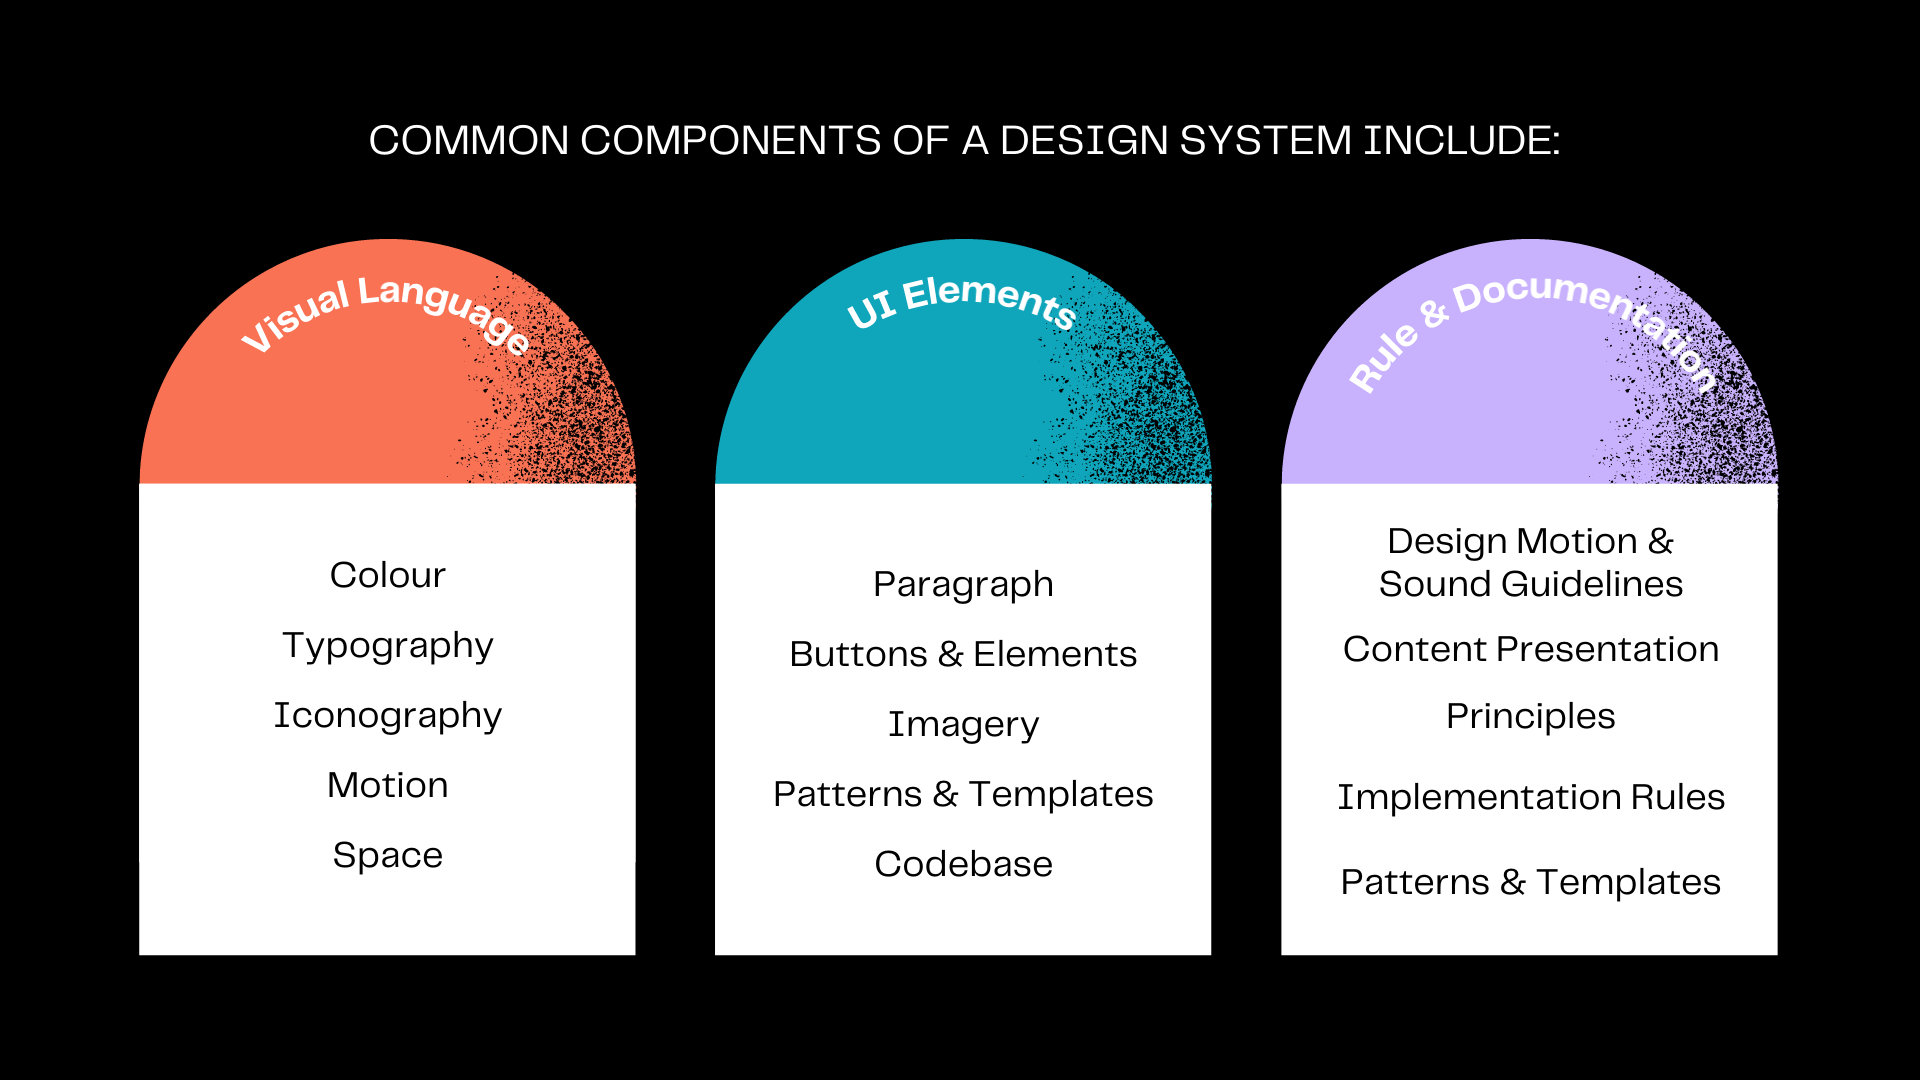 common components of a design system